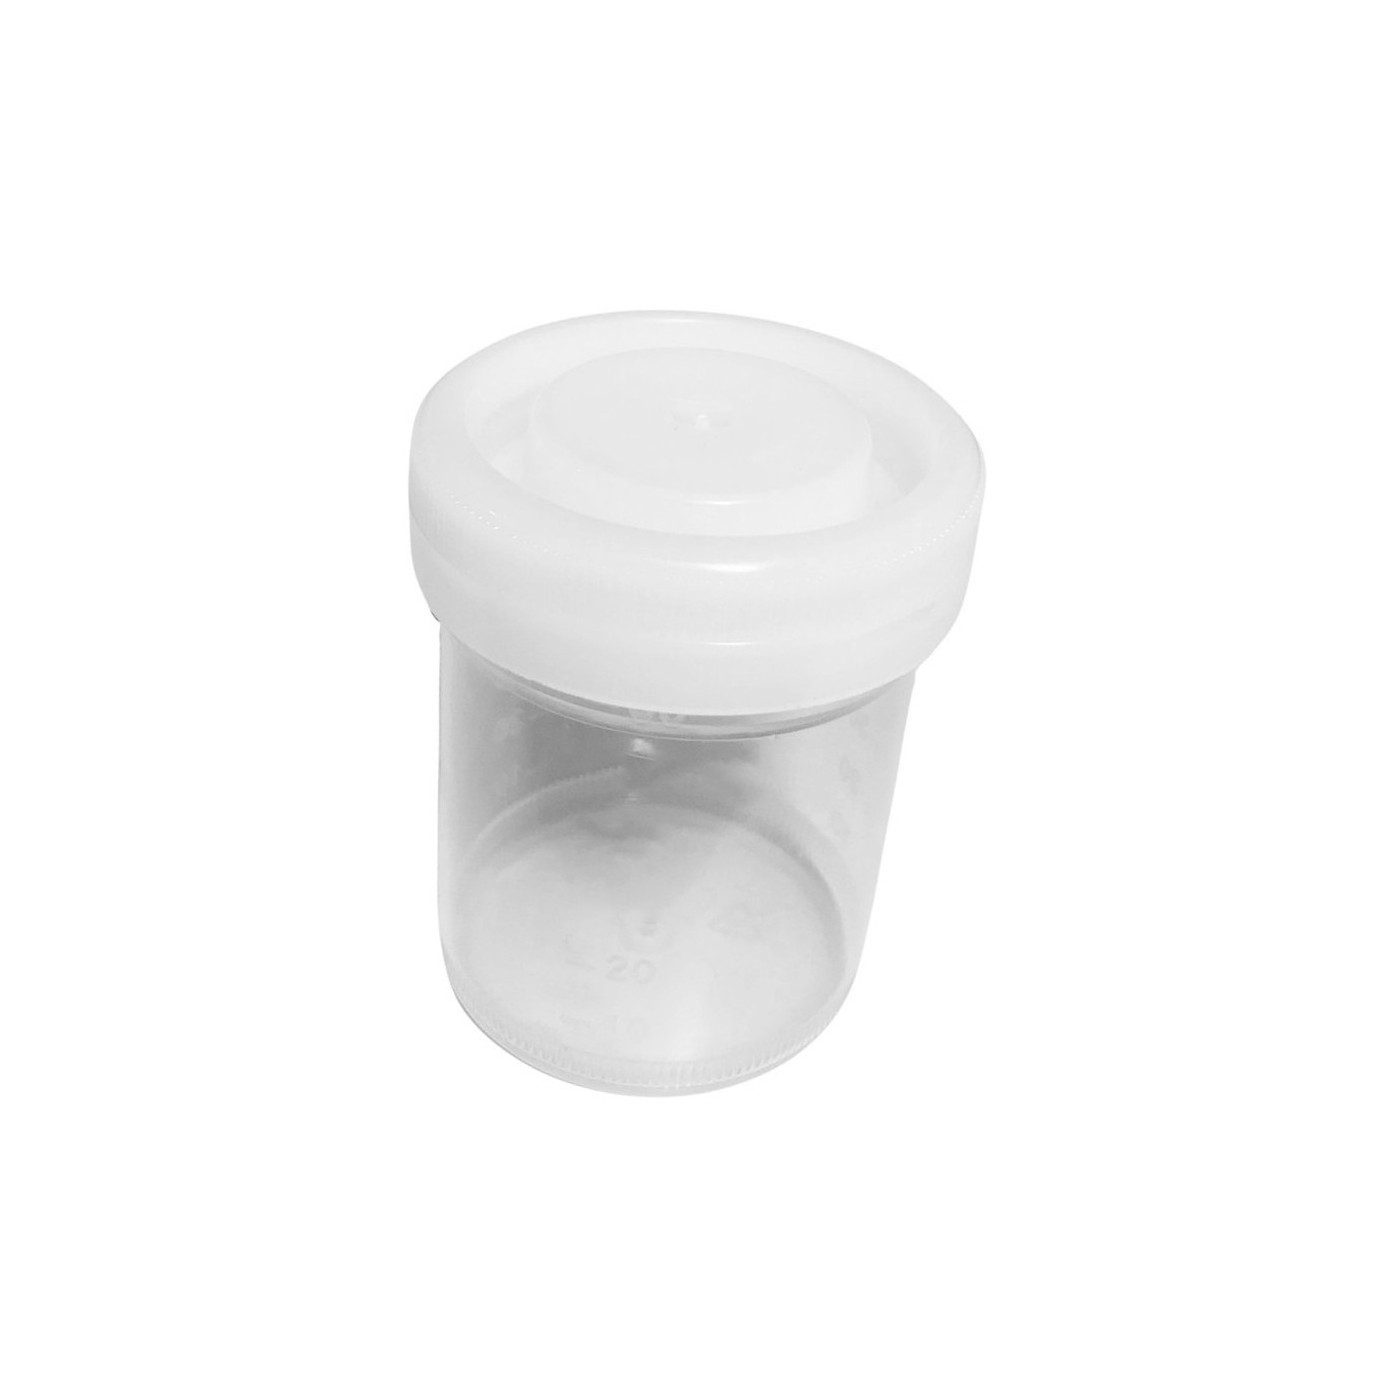 Set of 50 sample containers, 120 ml with screw caps